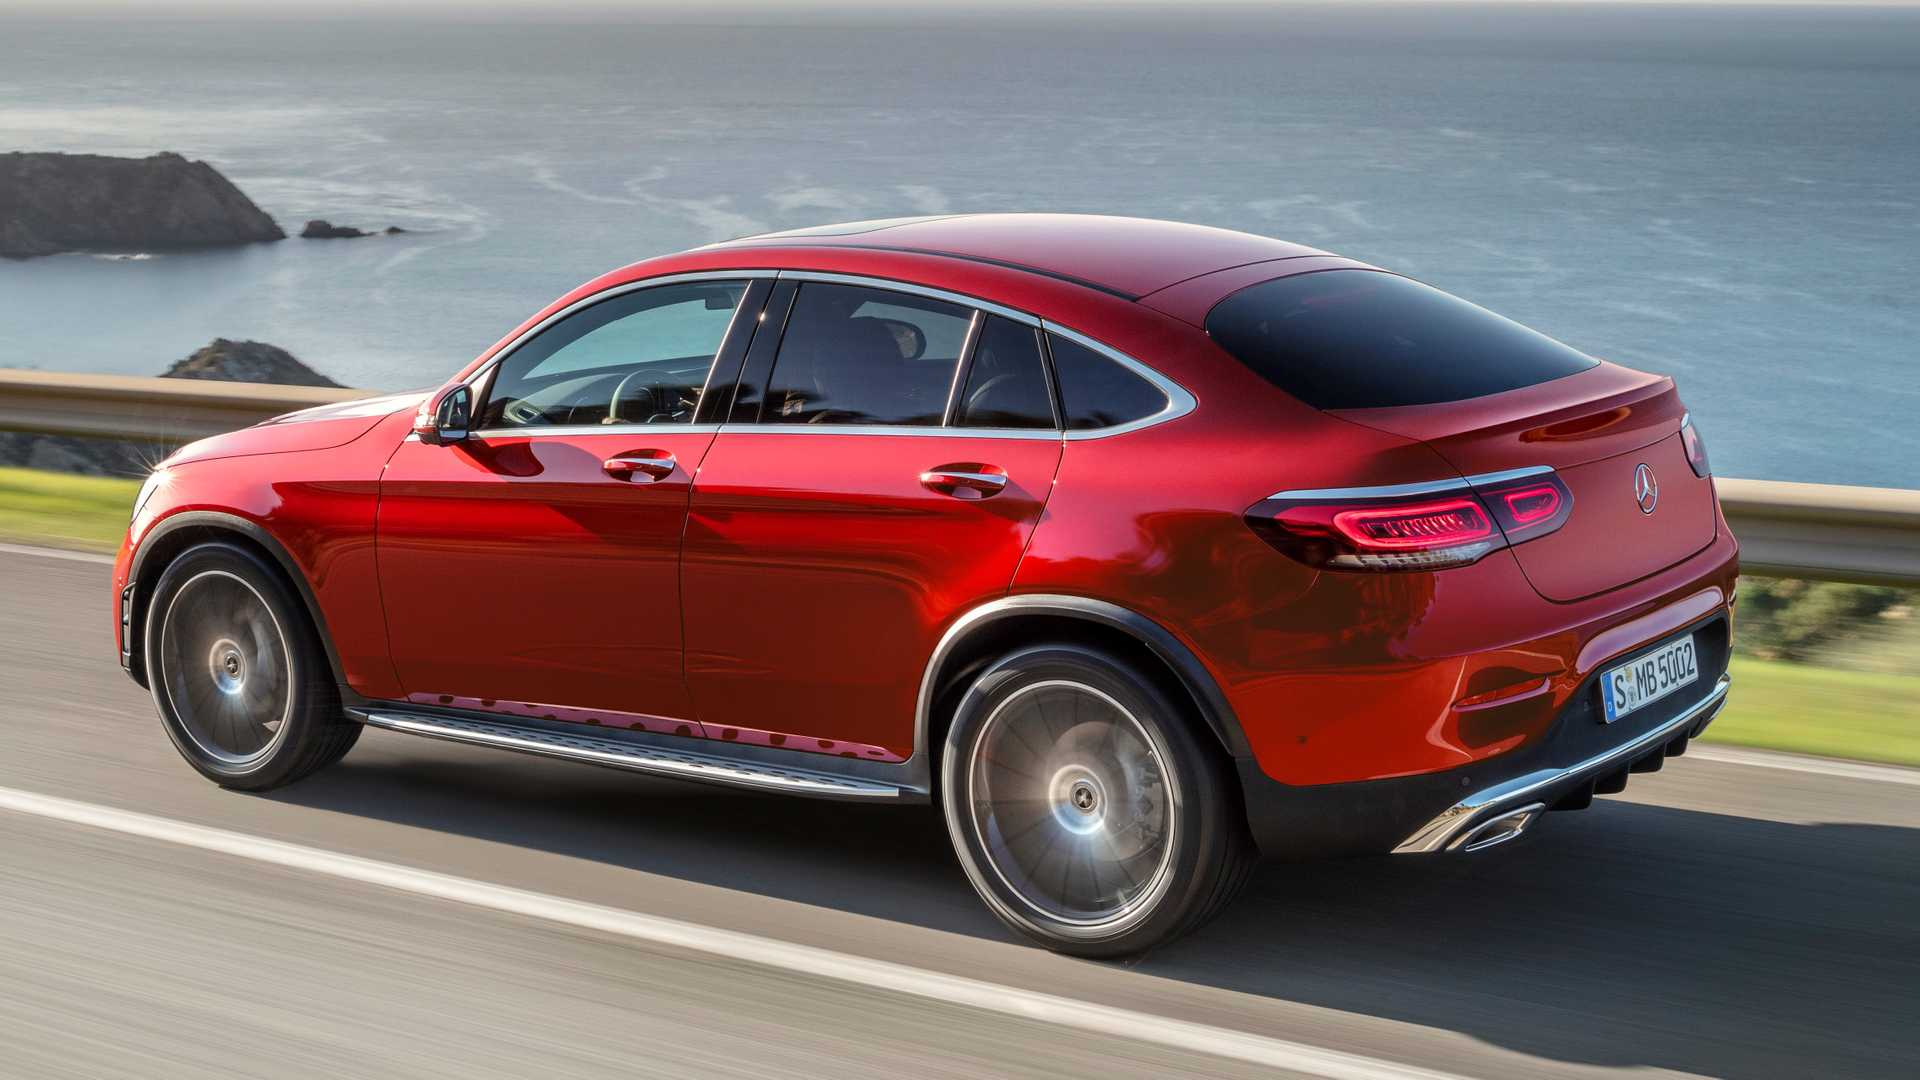 Mercedes Glc Coupe 2019 Rojo 013